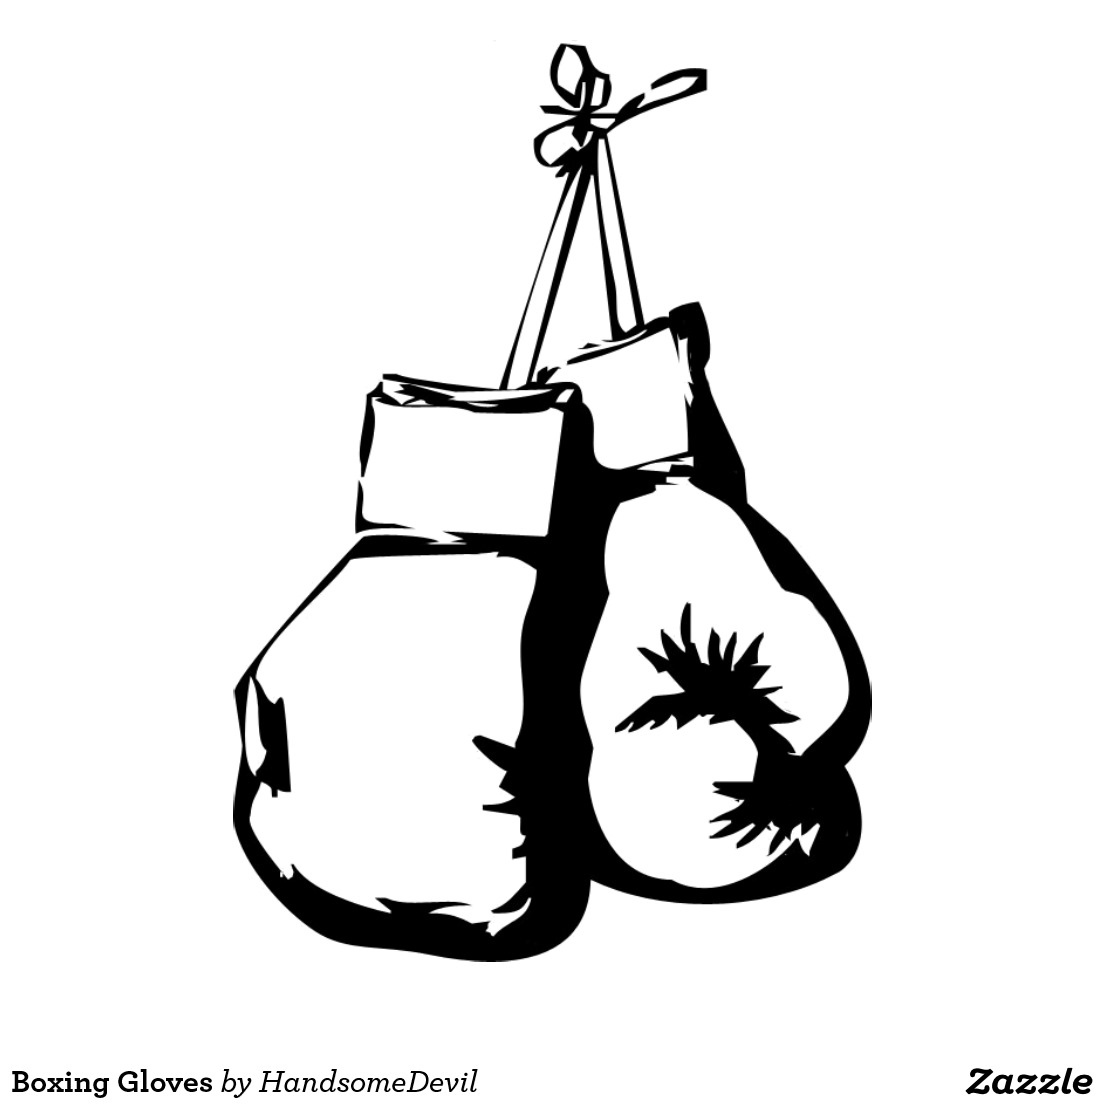 Free Boxing Gloves Clipart Black And White, Download Free Clip Art.